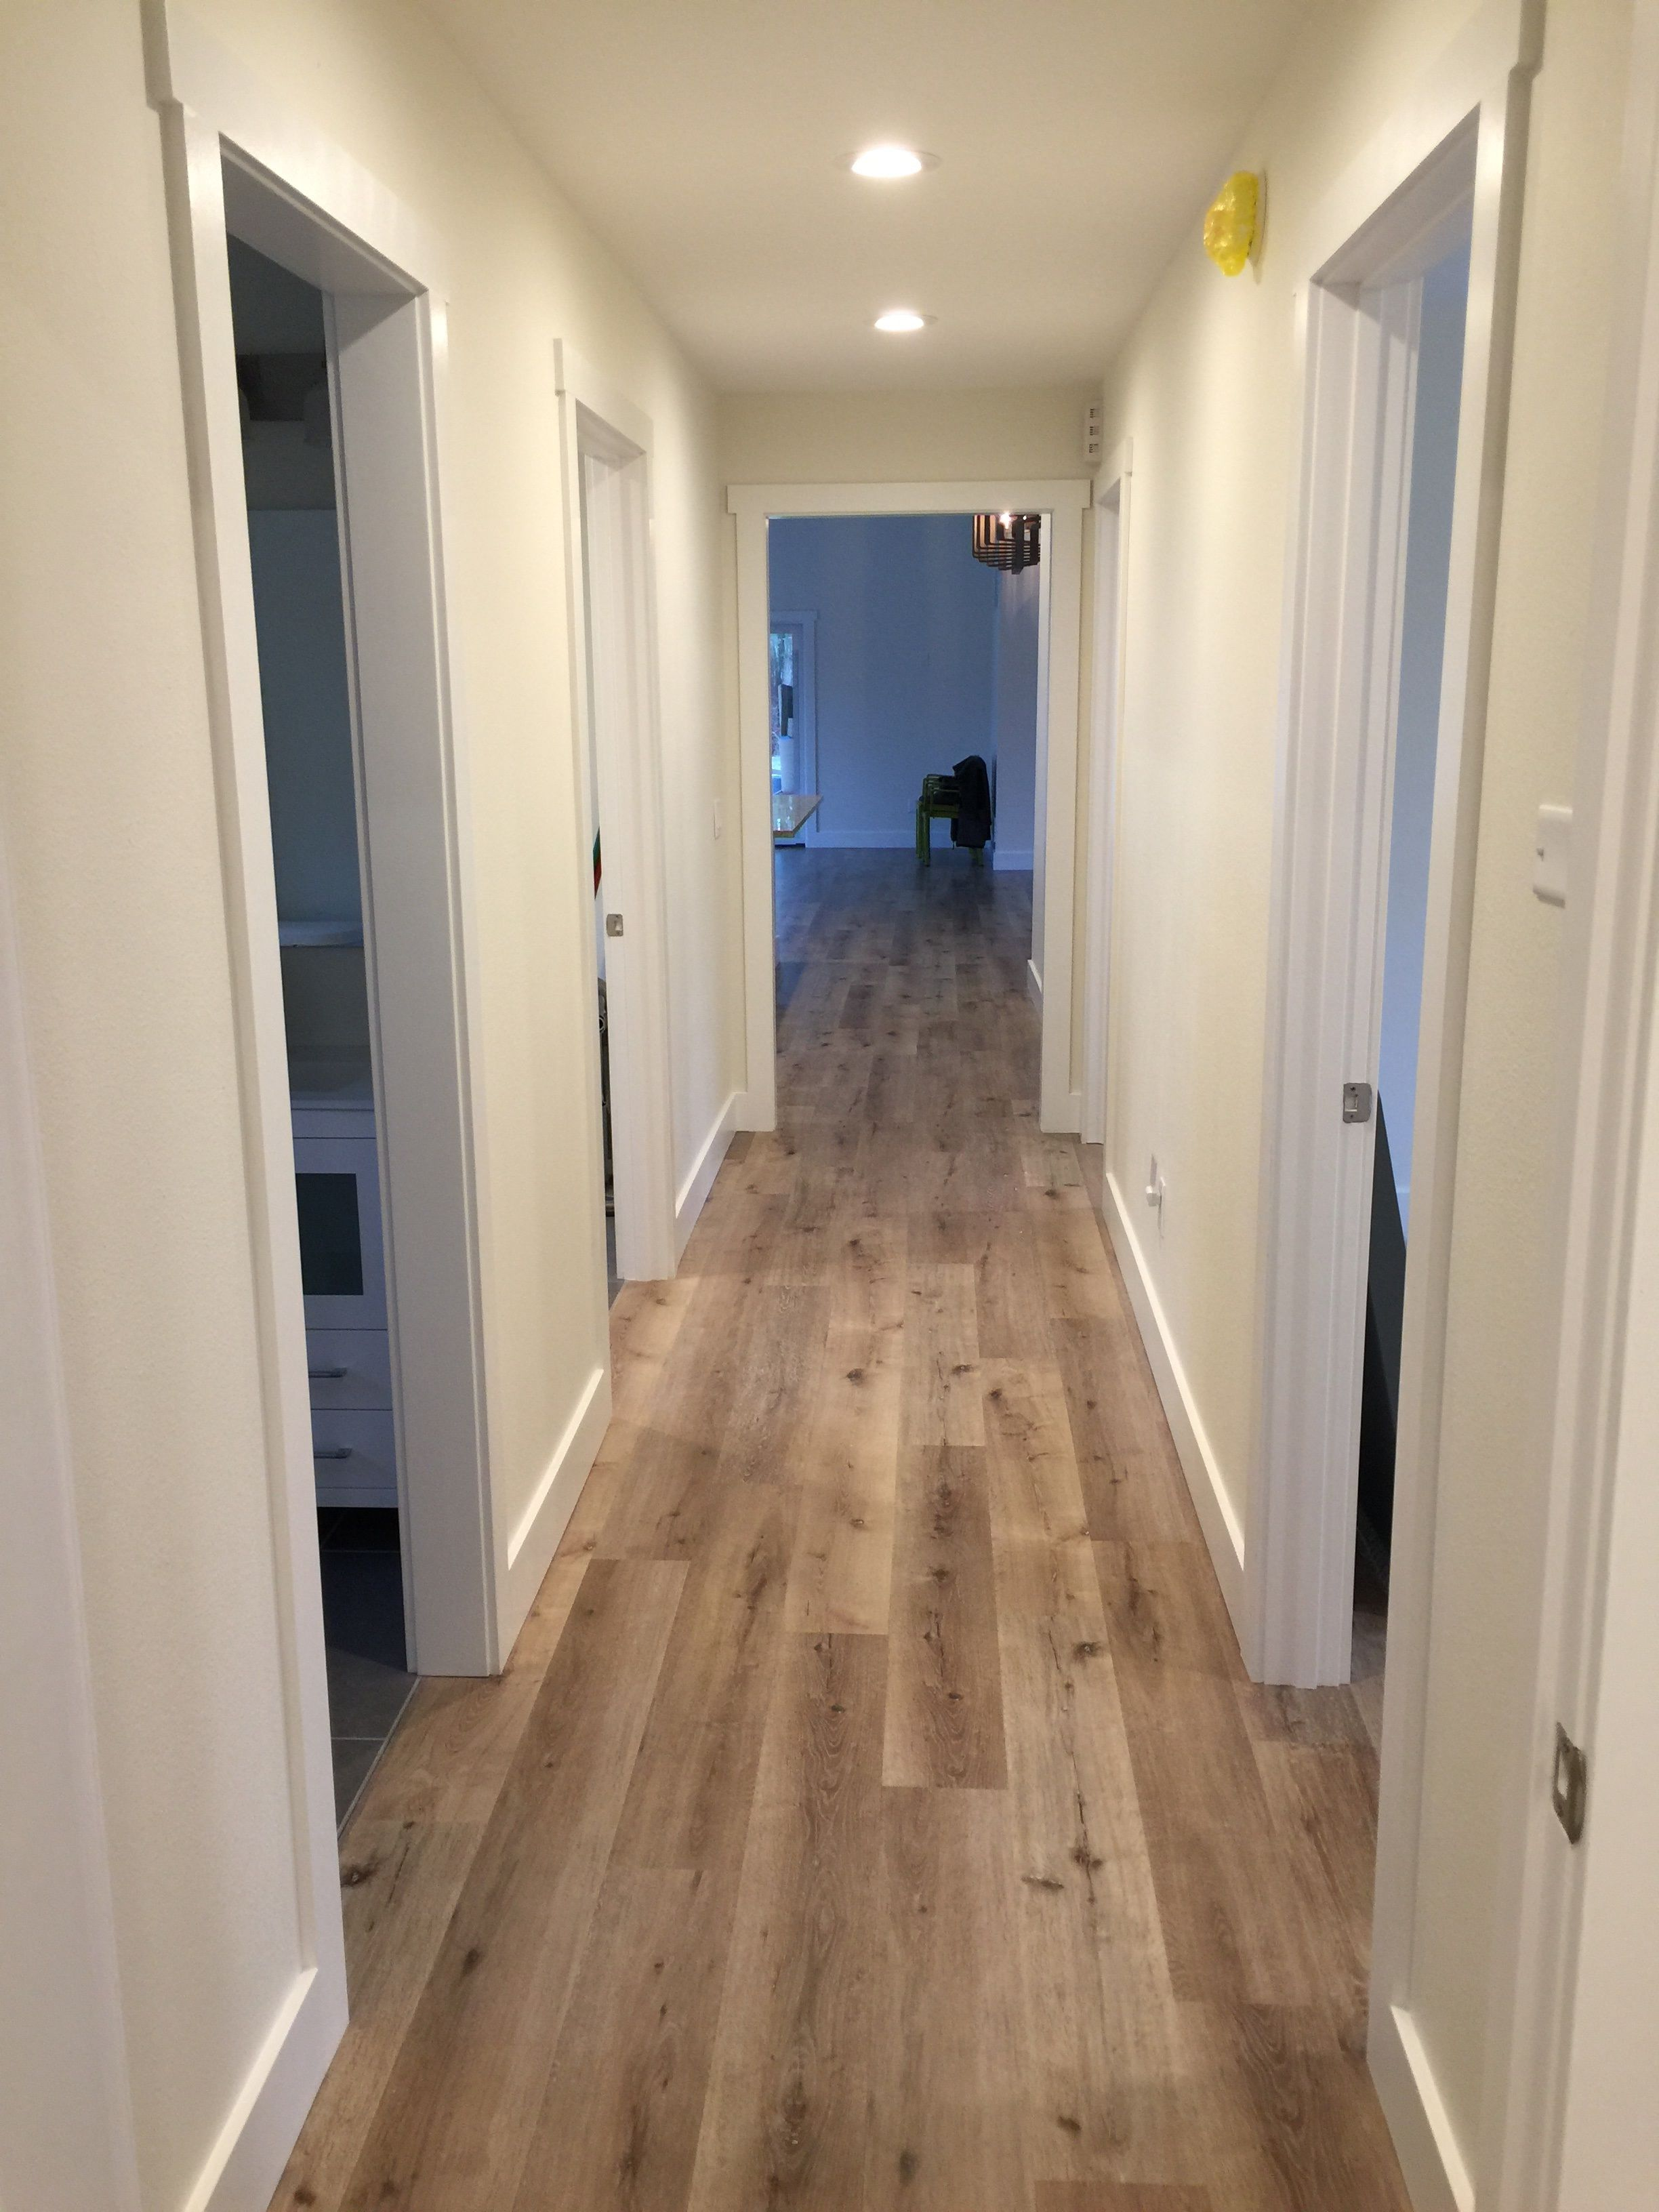 Aged Hickory Vinyl Waterproof Flooring Waterproof Flooring Vinyl Wood Planks Flooring